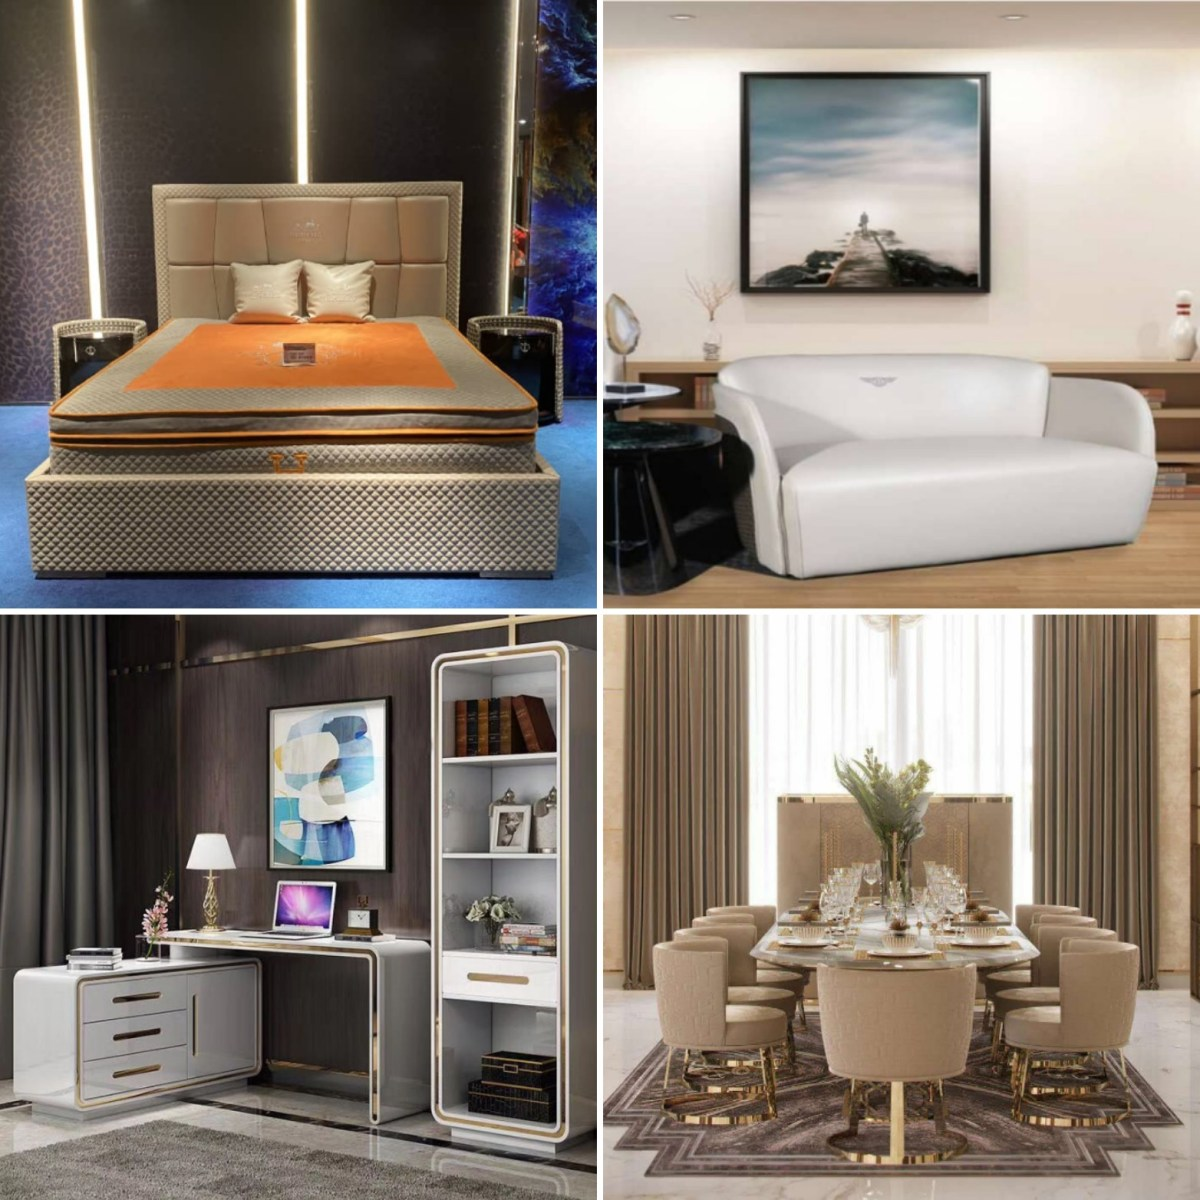 Motomart, Your One-Stop Shop For Luxury And Affordable Furniture, Sanitary Wares, and Building Materials